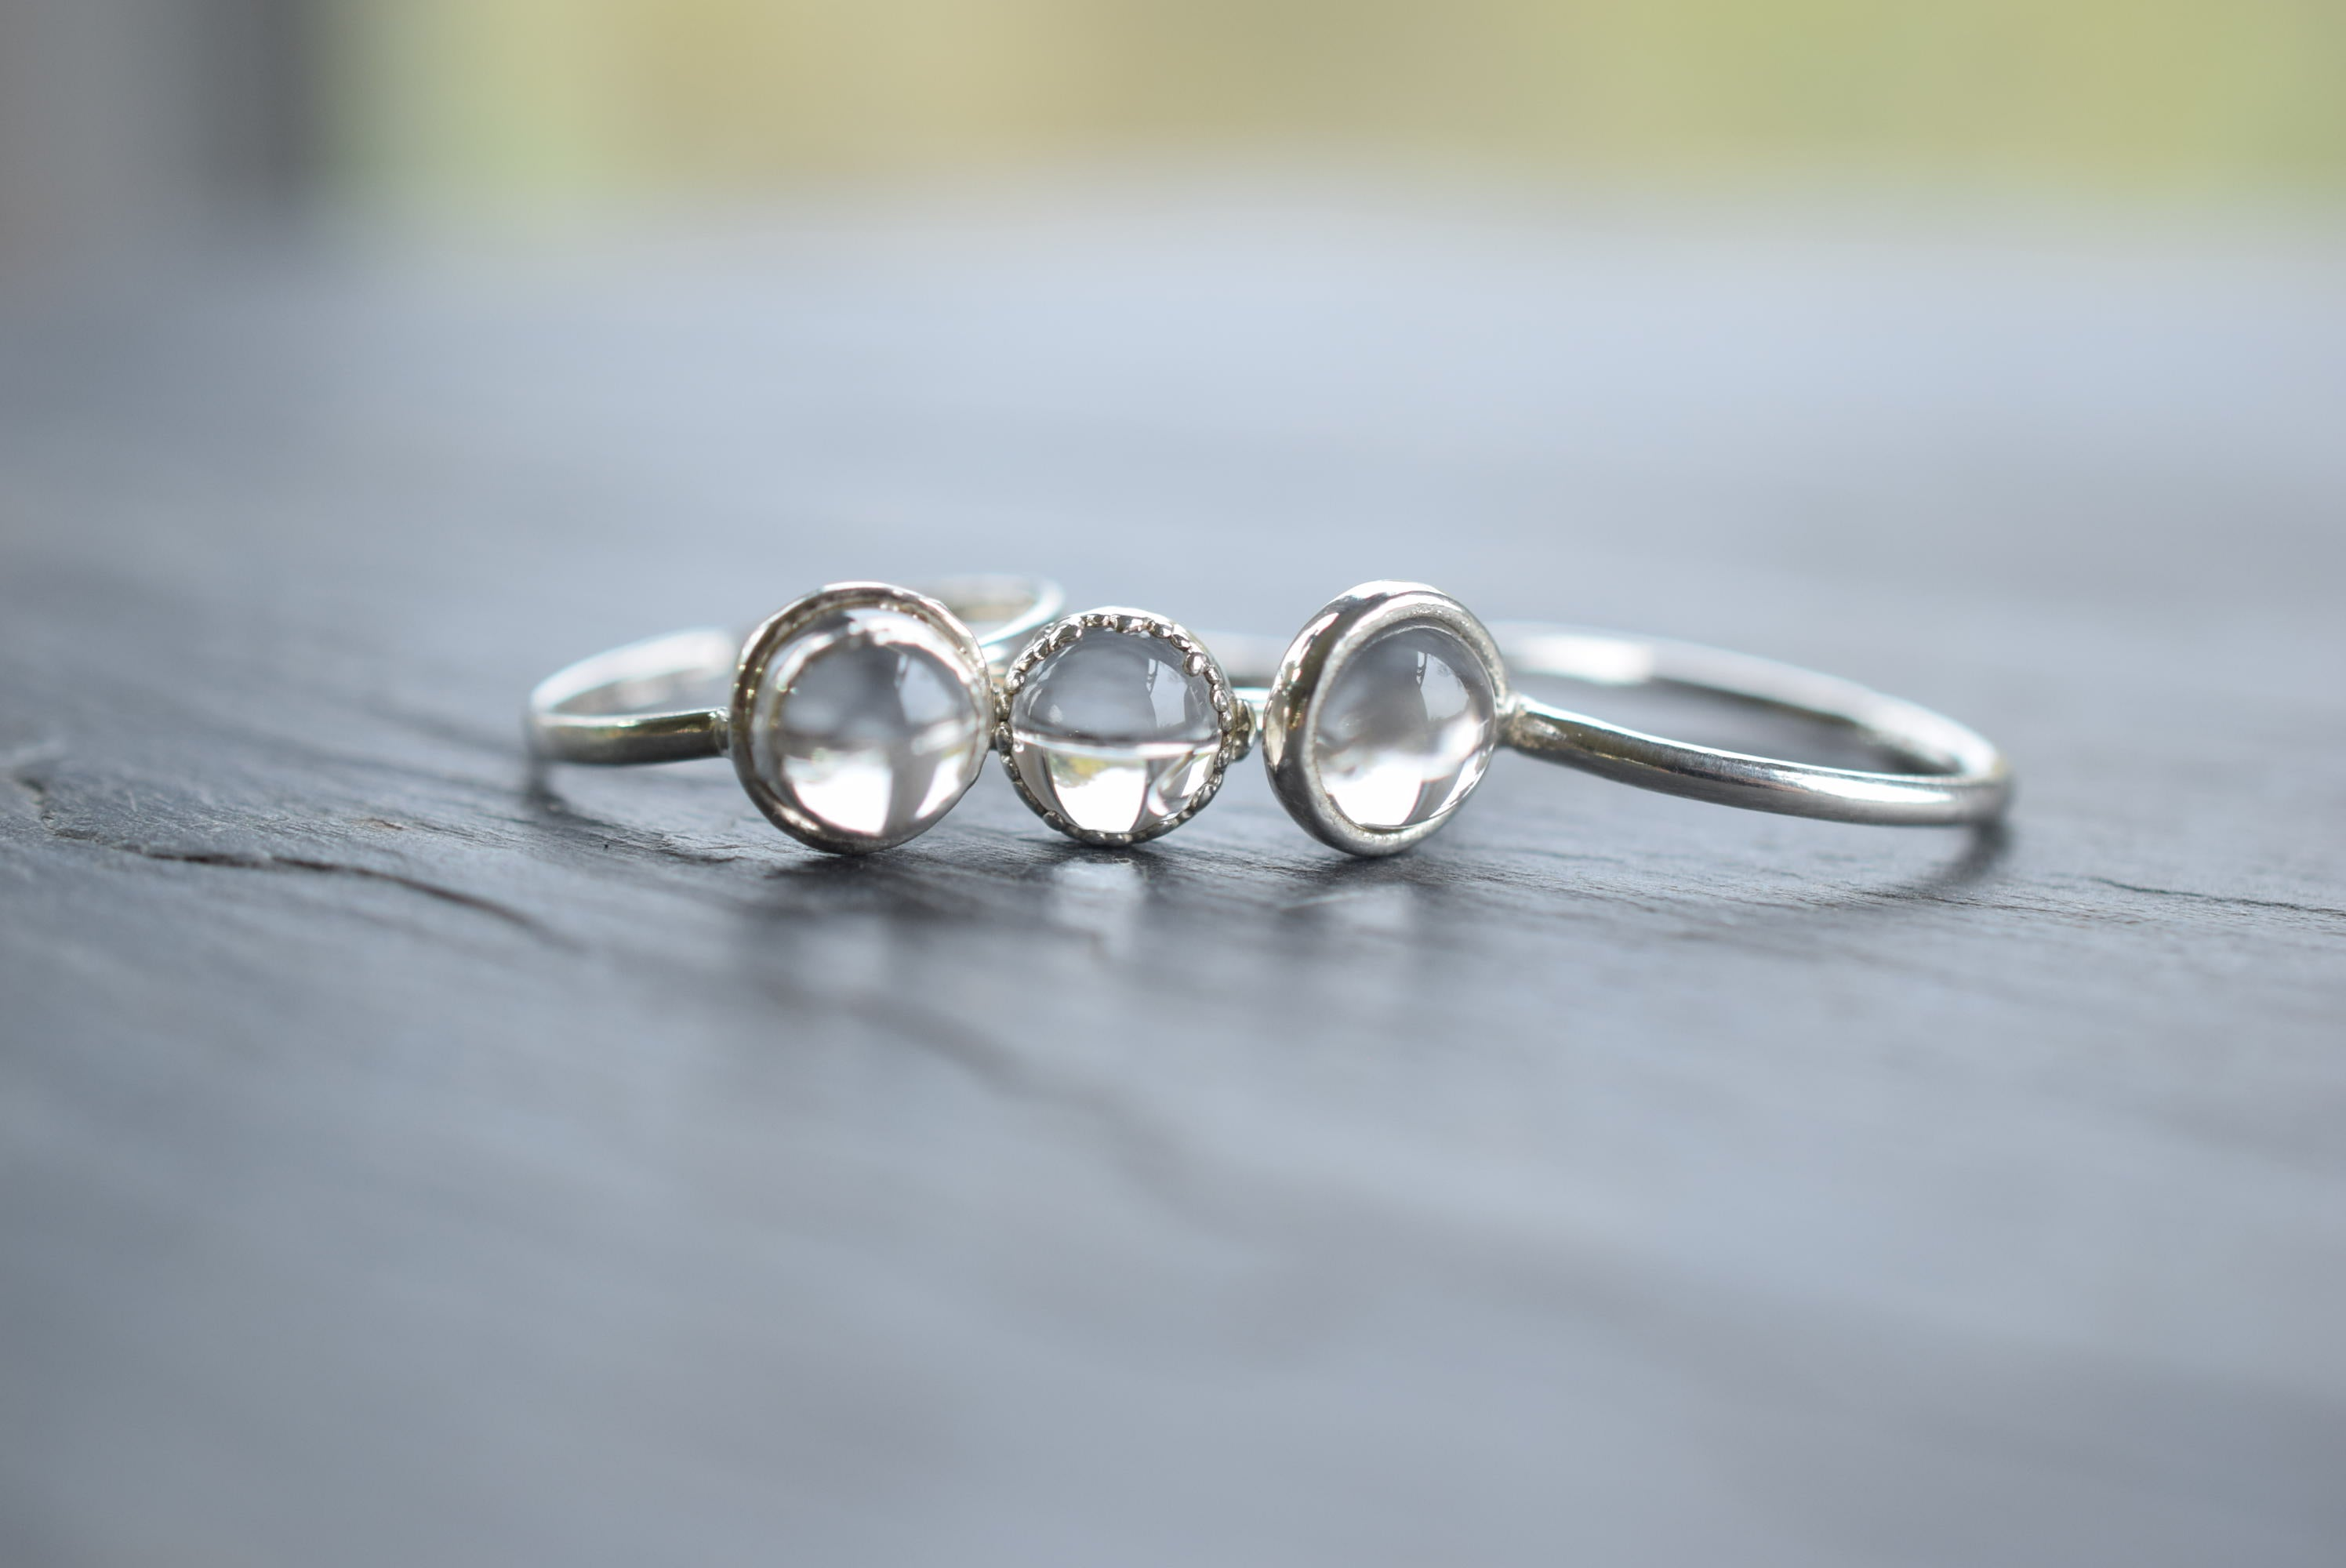 MINATURE QUARTZ 'PORTABLE CRYSTAL BALL' RING IN FINE SILVER